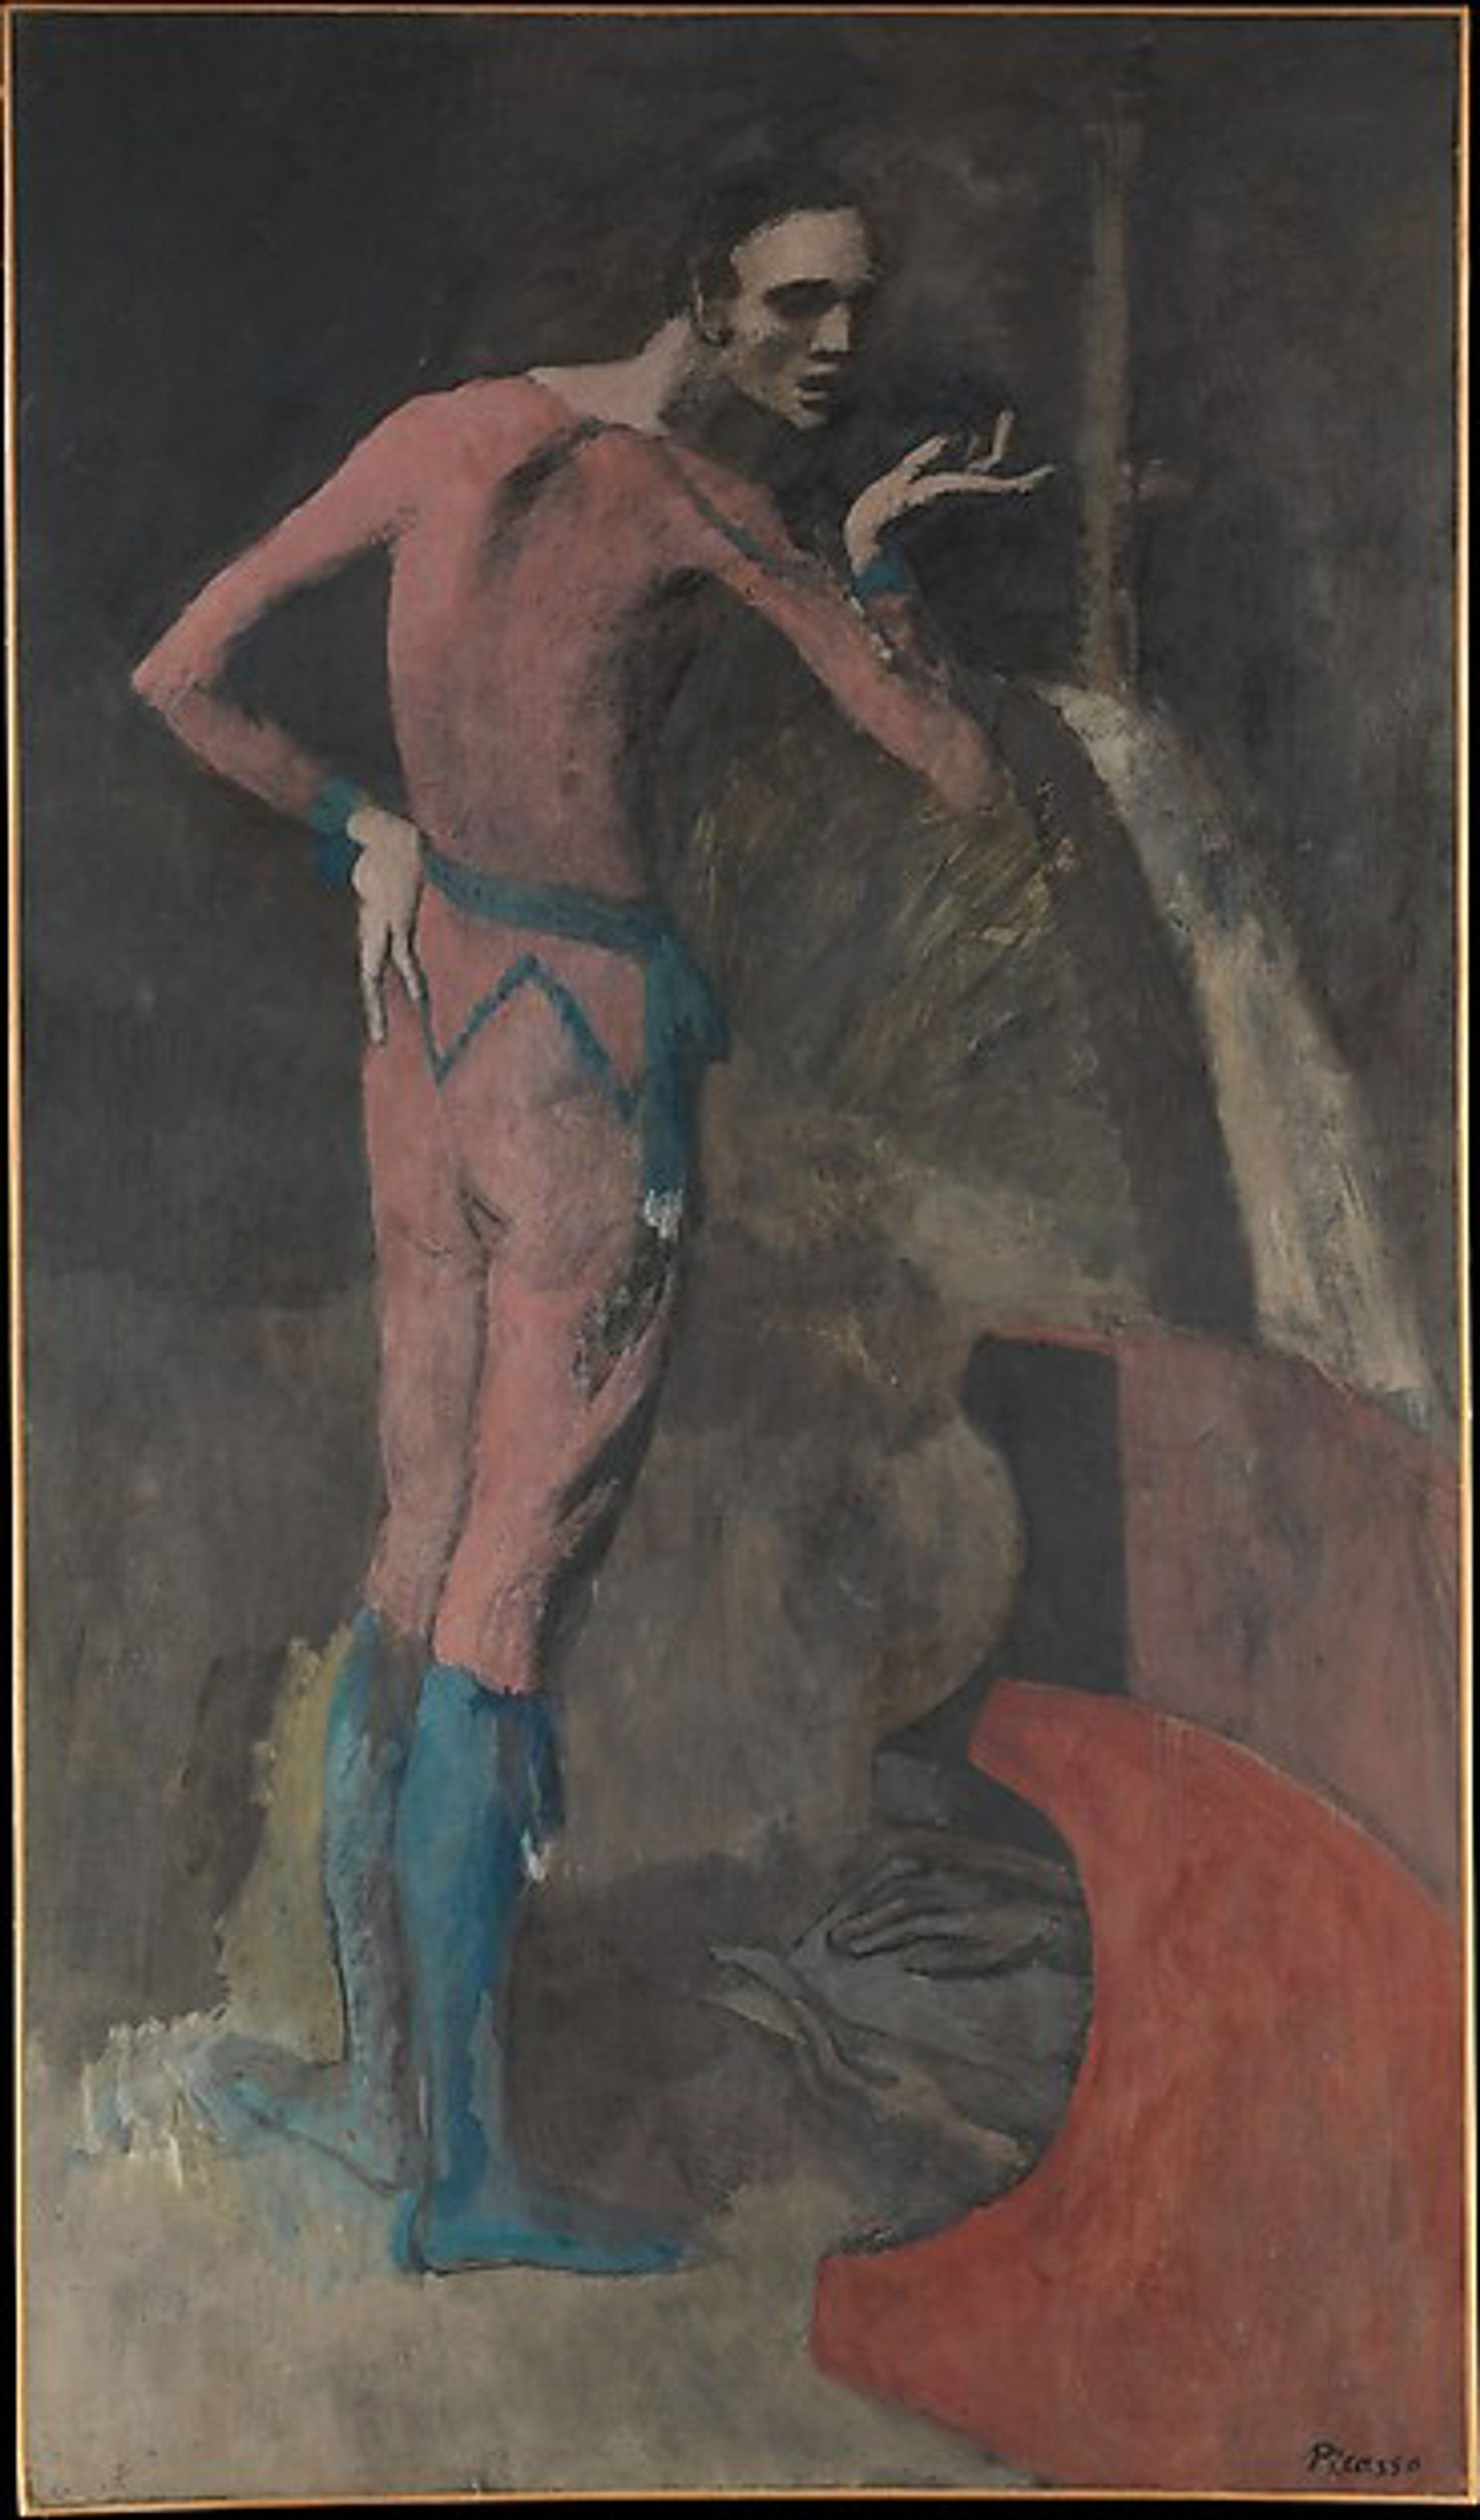 Pablo Picasso, The Actor (1904-05) 2018 Estate of Pablo Picasso / Artists Rights Society (ARS), New York